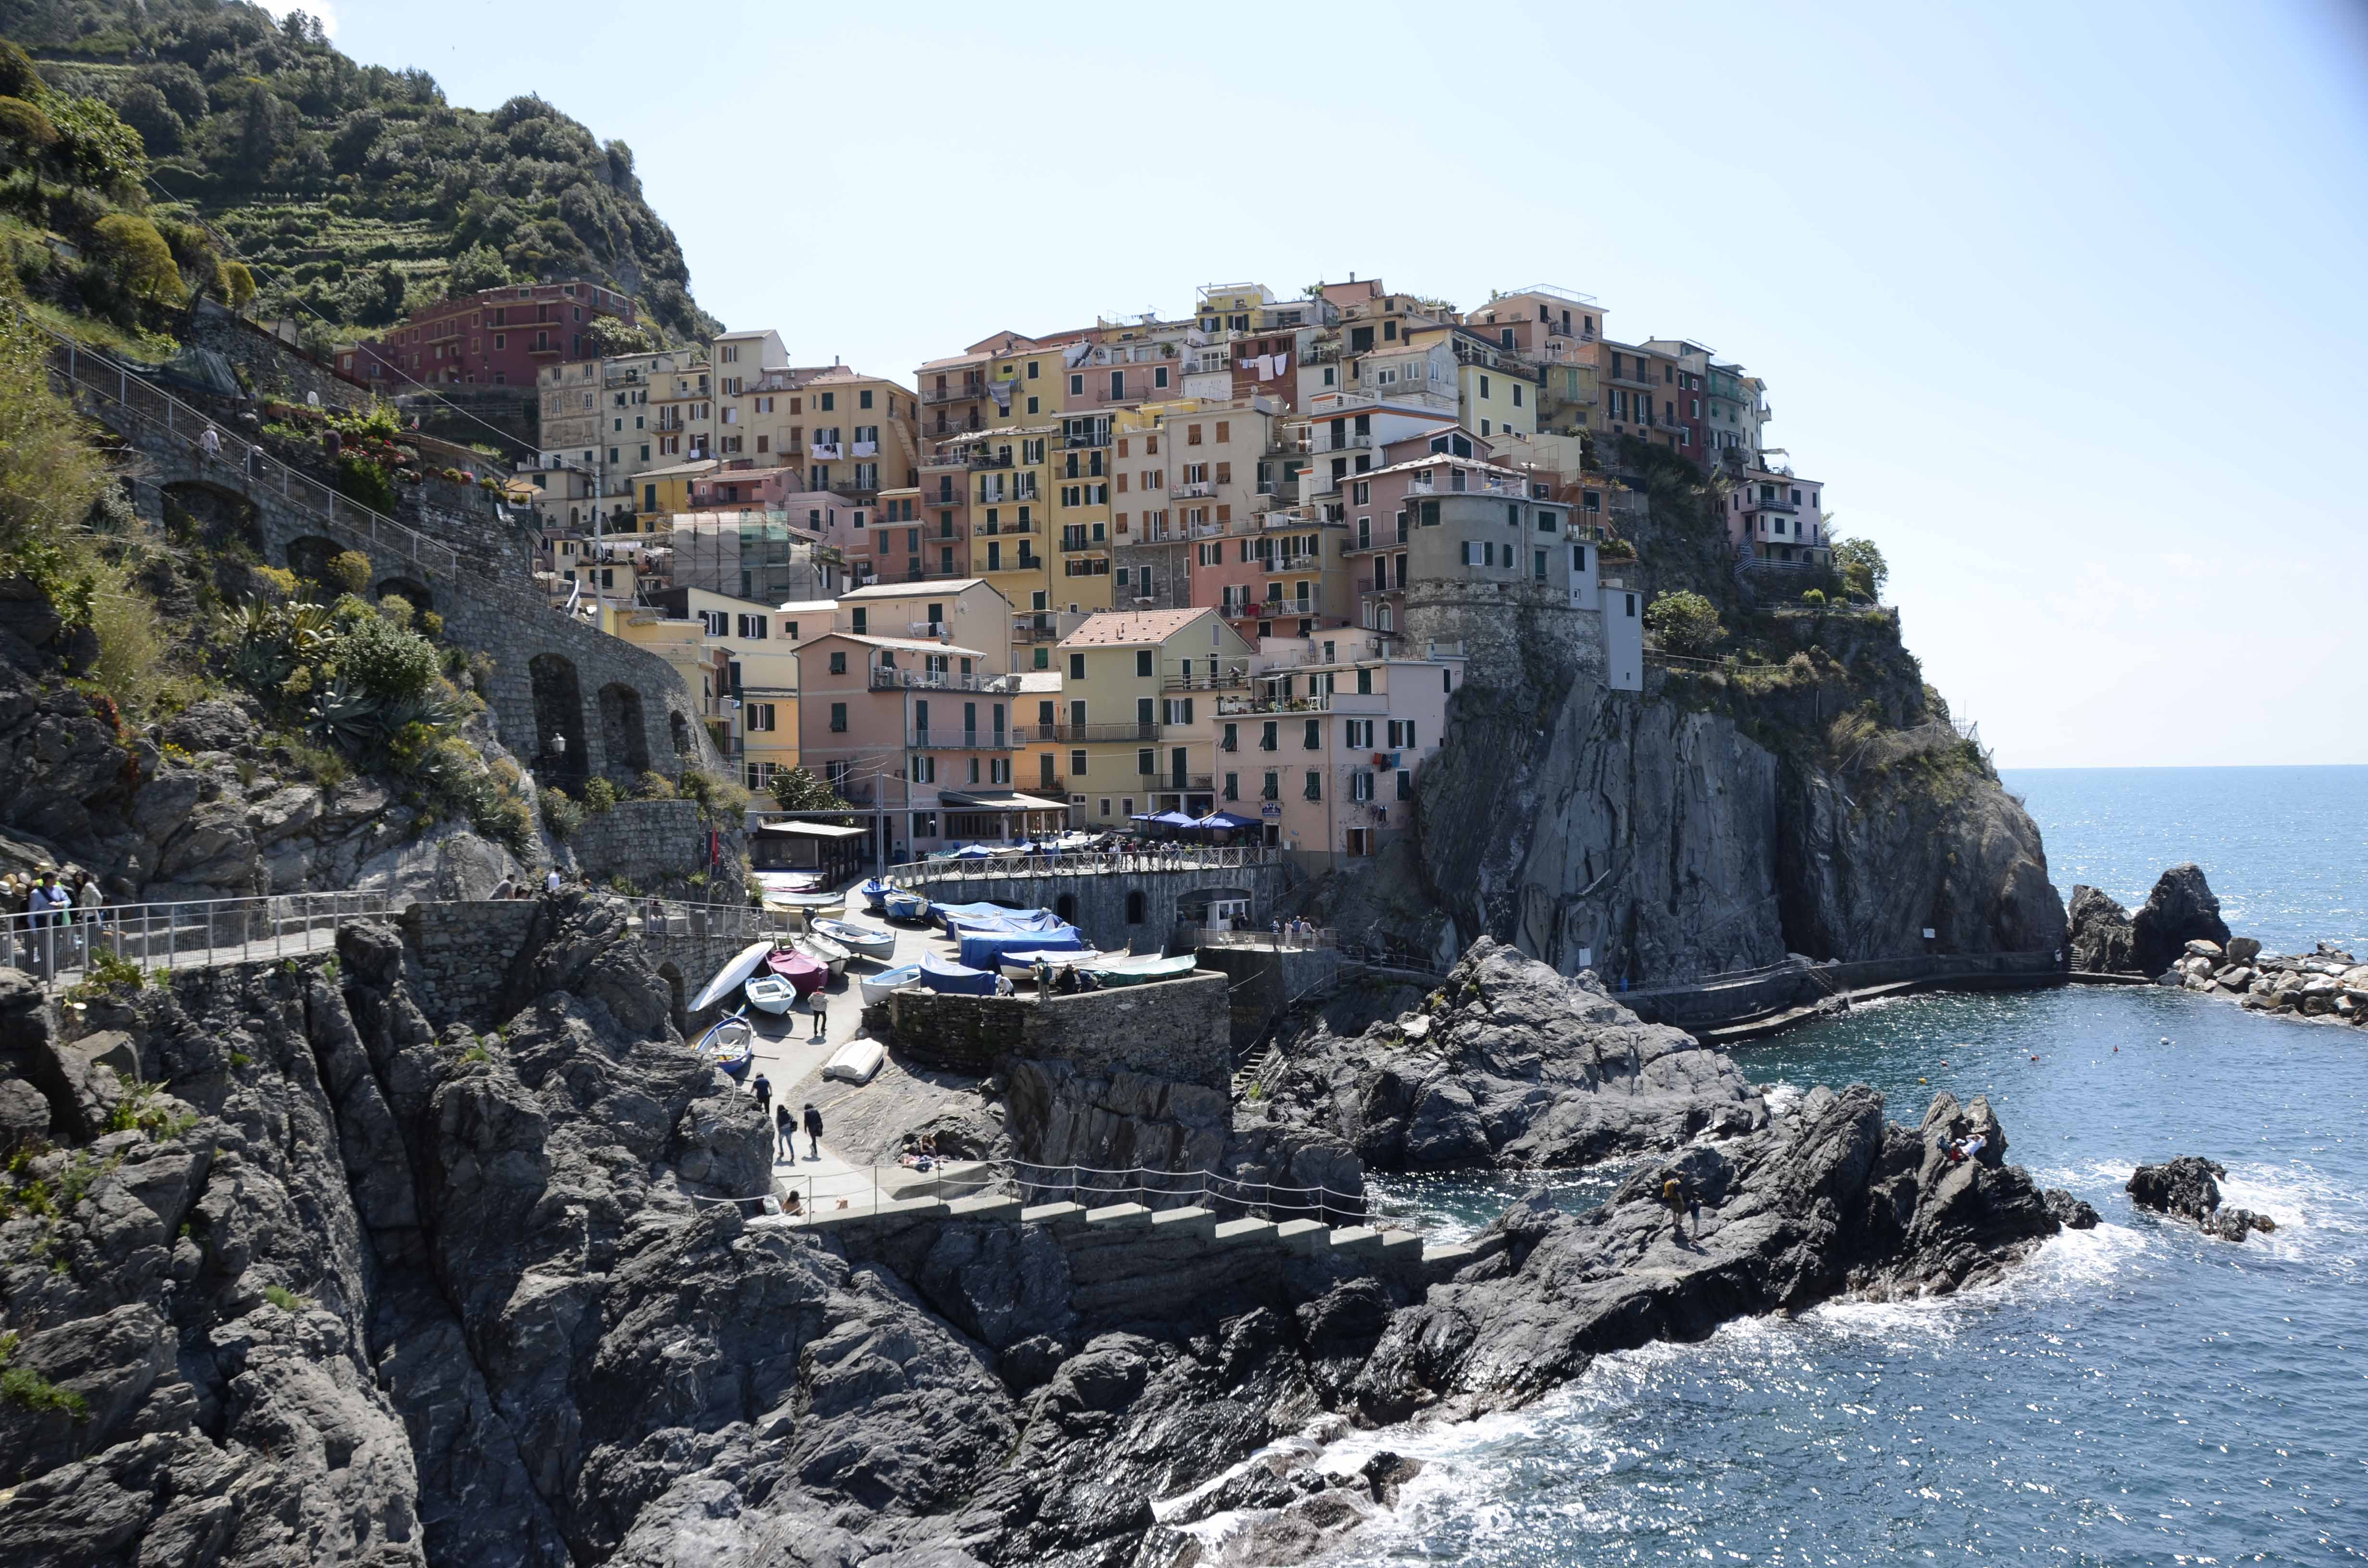 Manarola, registered as one of the most beauiful villages in Italy